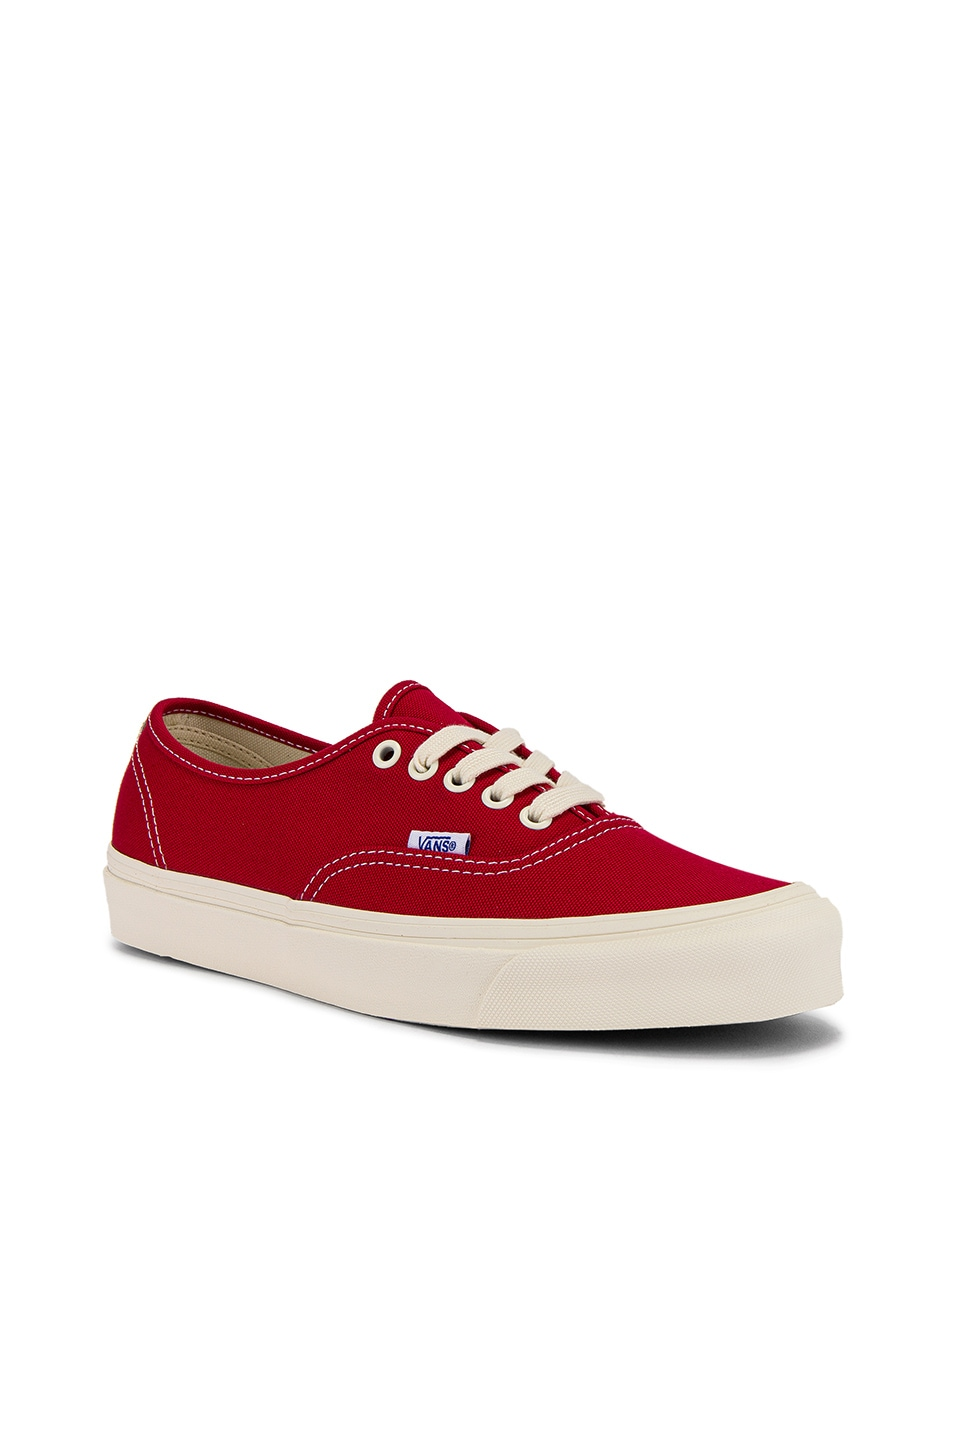 Image 2 of Vans Vault OG Authentic LX in Chili Pepper & Teak